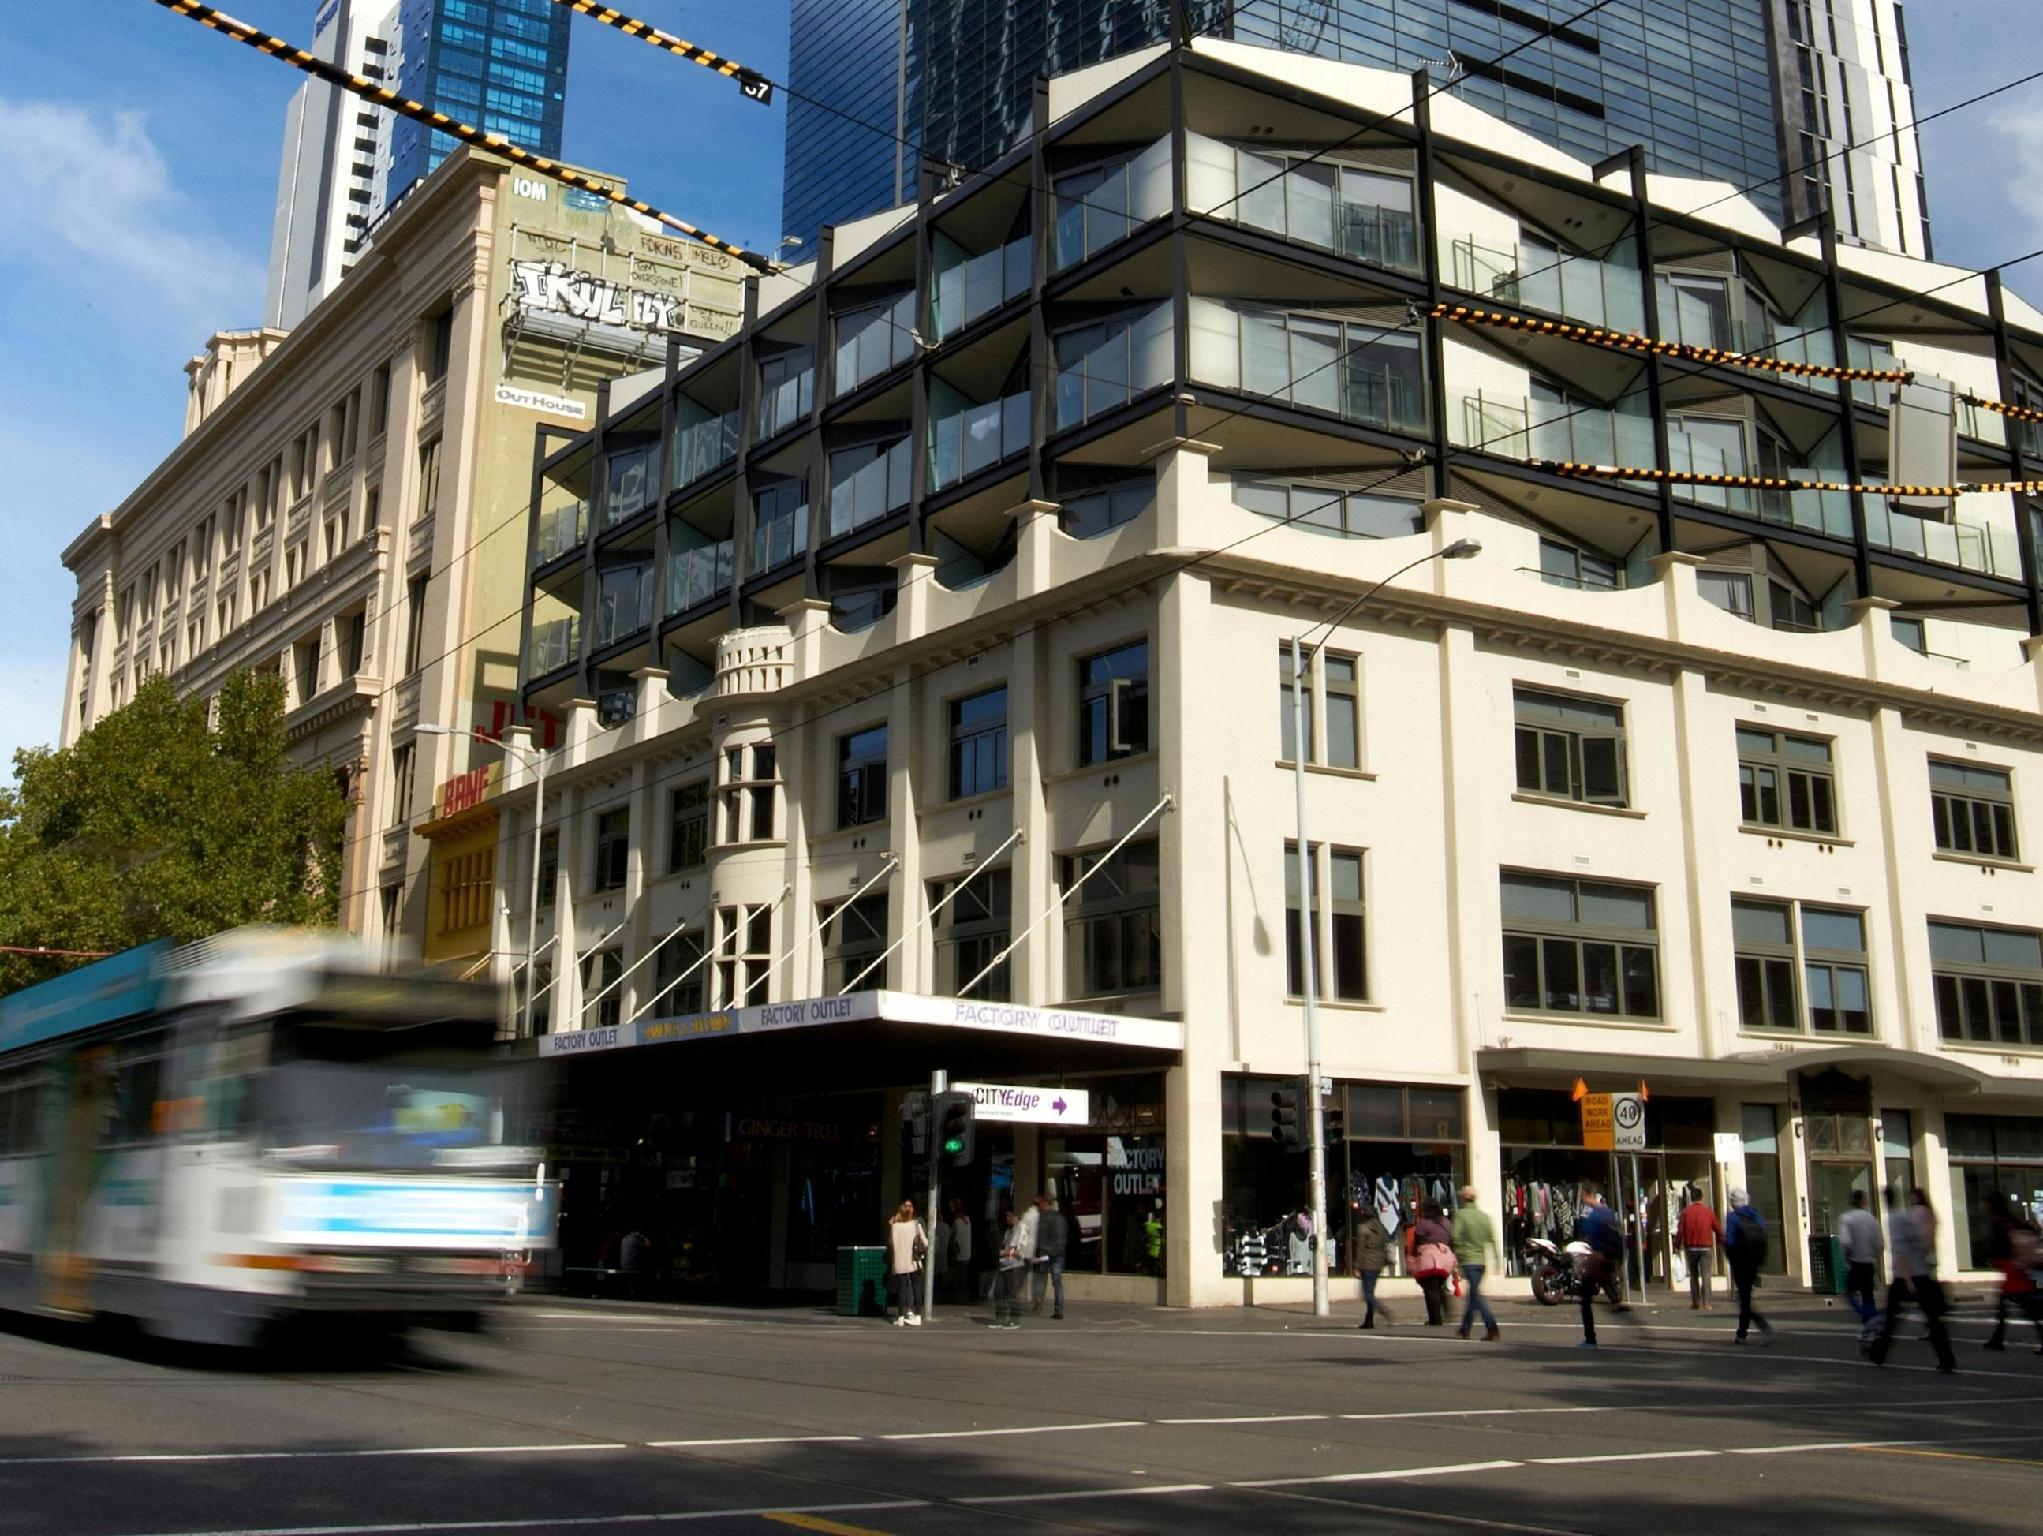 City edge on elizabeth apartment hotel melbourne cbd for Appart hotel melbourne